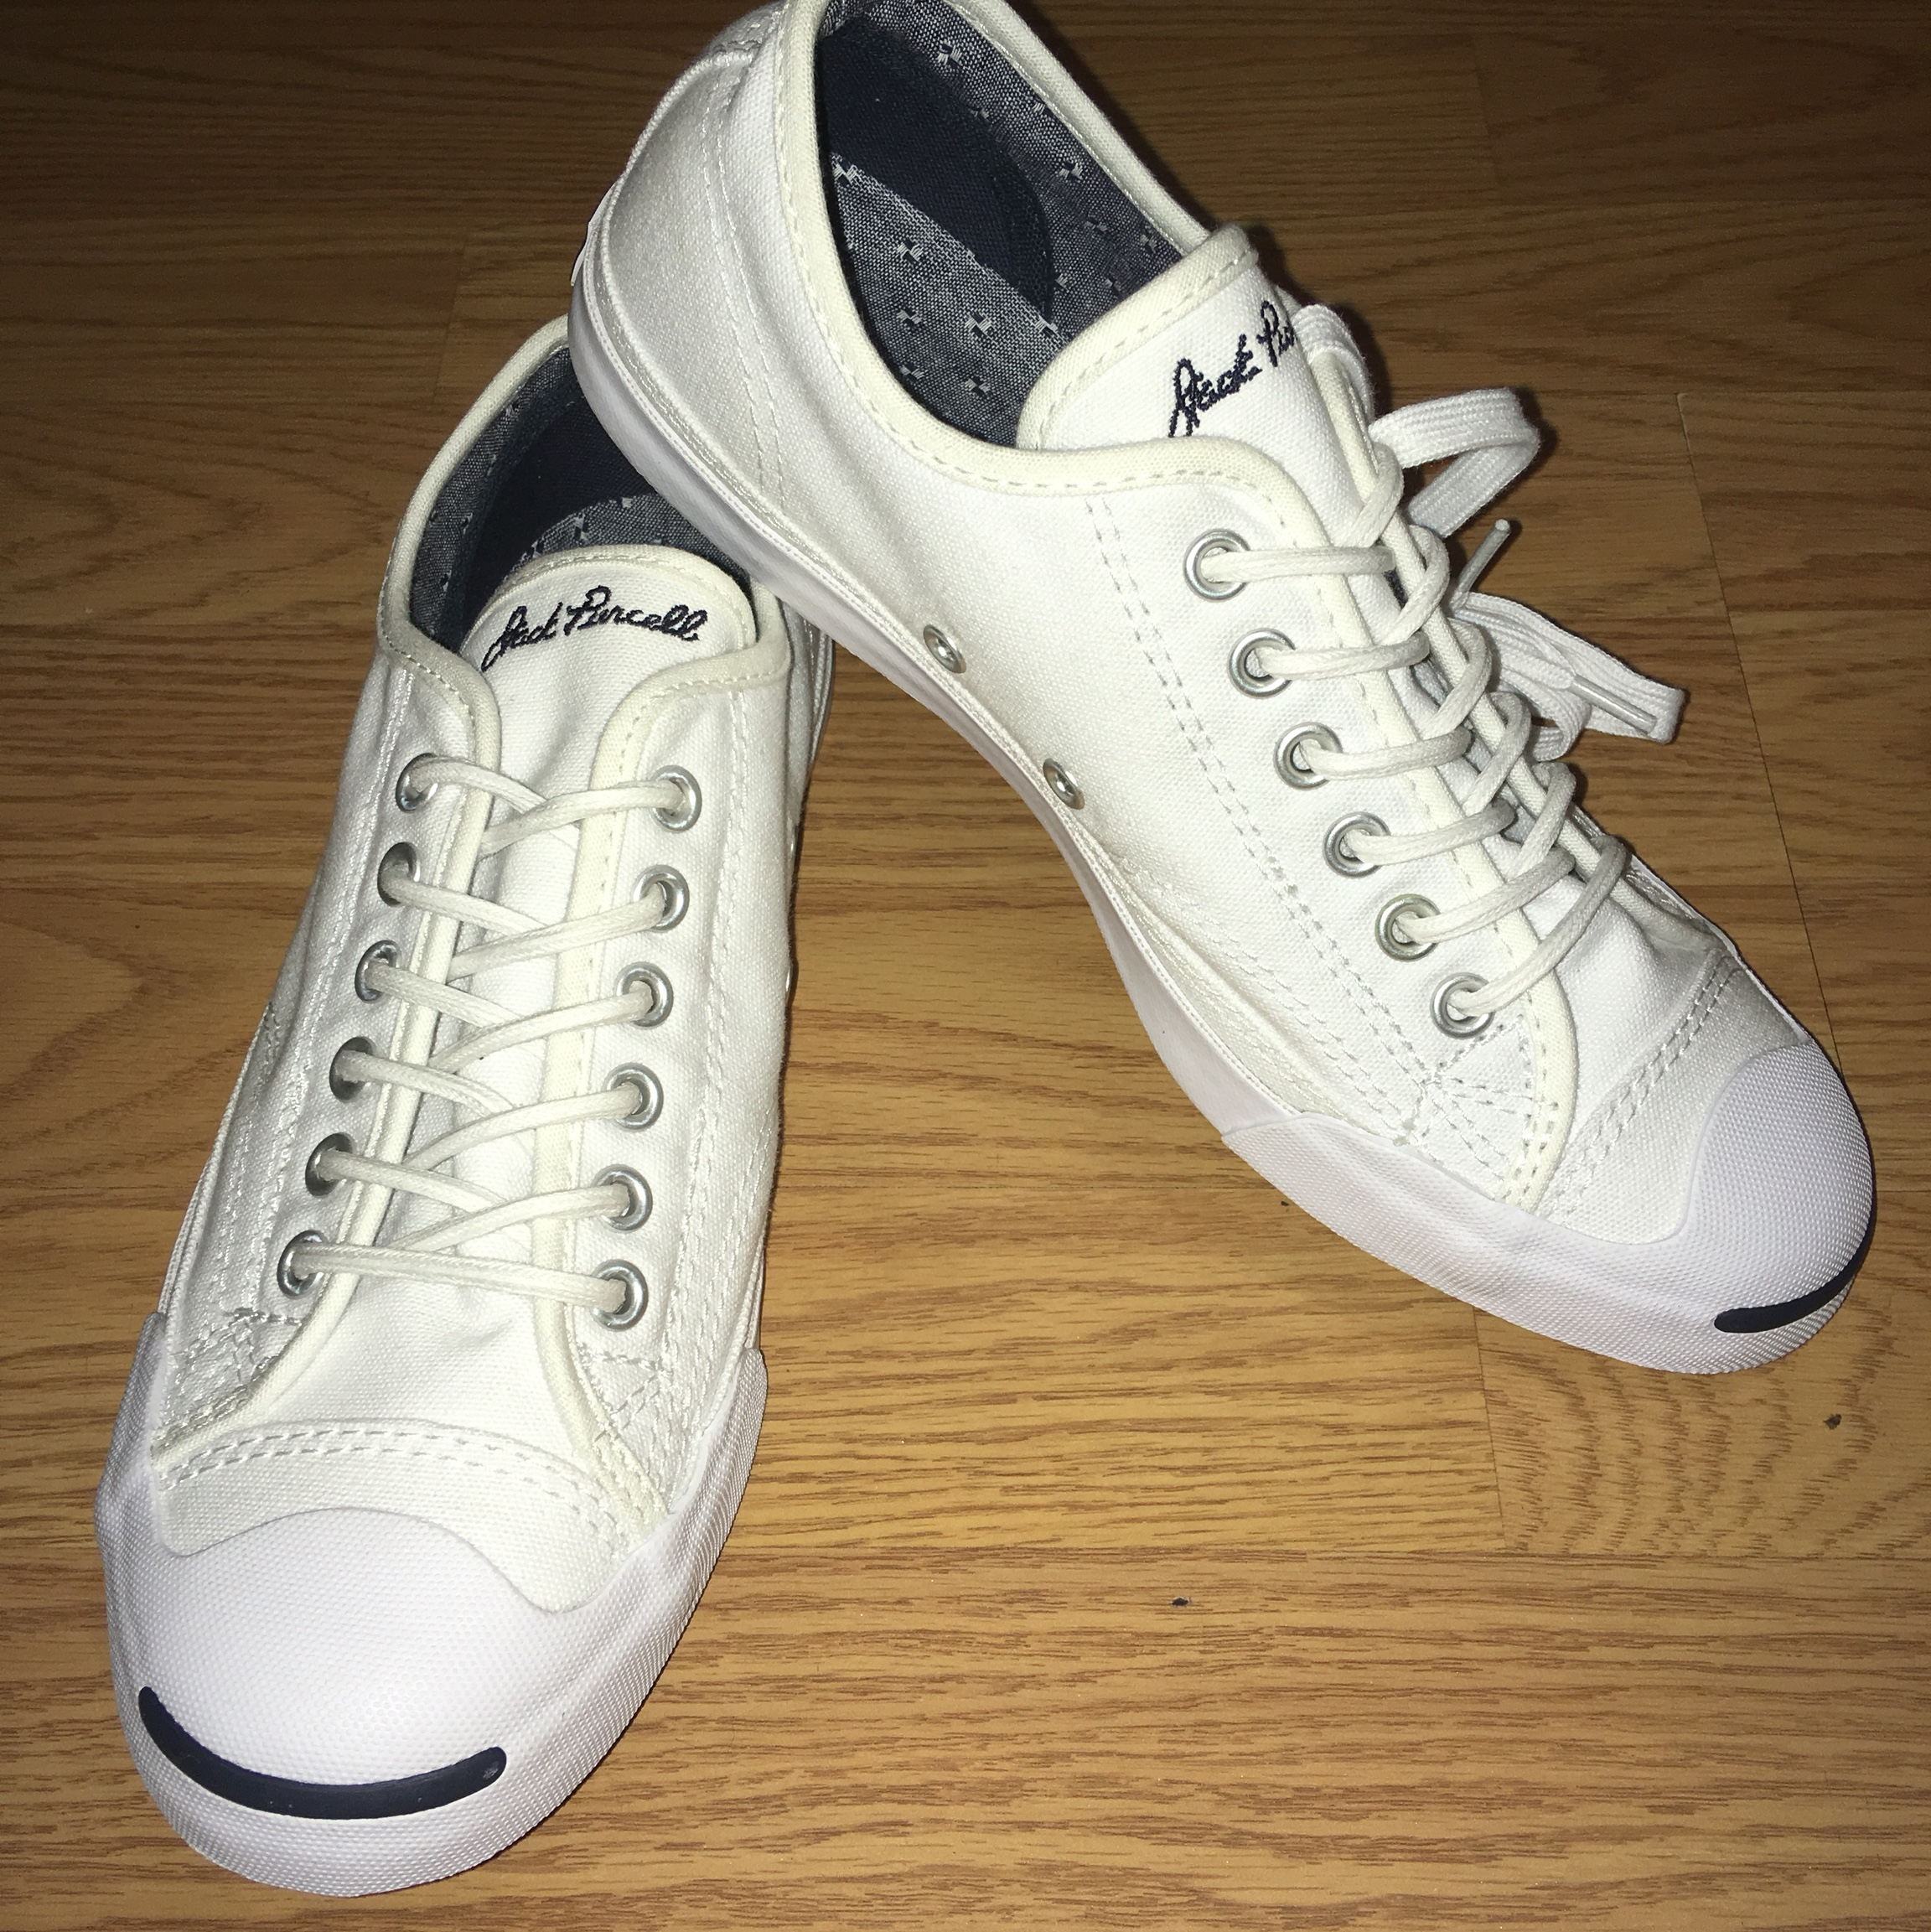 Converse Jack Purcell Unisex Extra